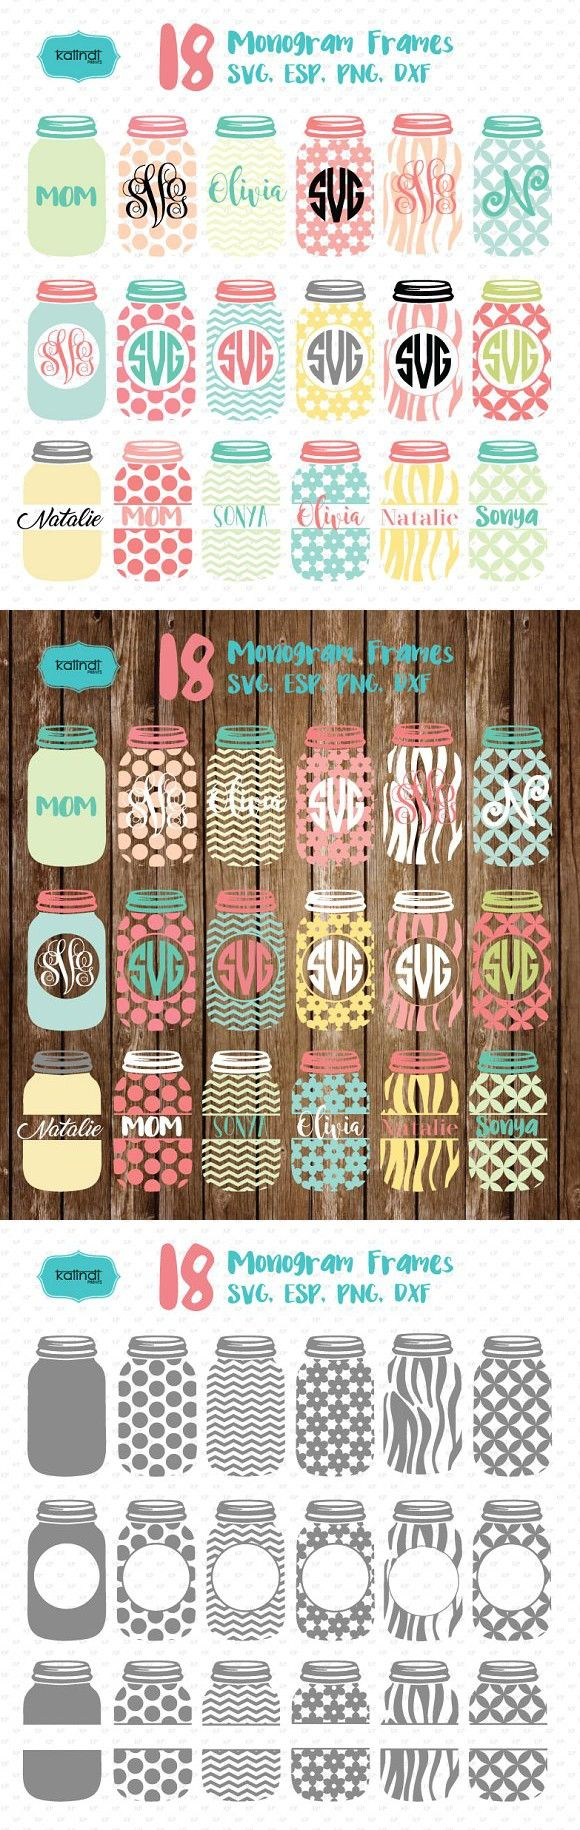 Mason jar monogram frames svg. Wedding Card Templates